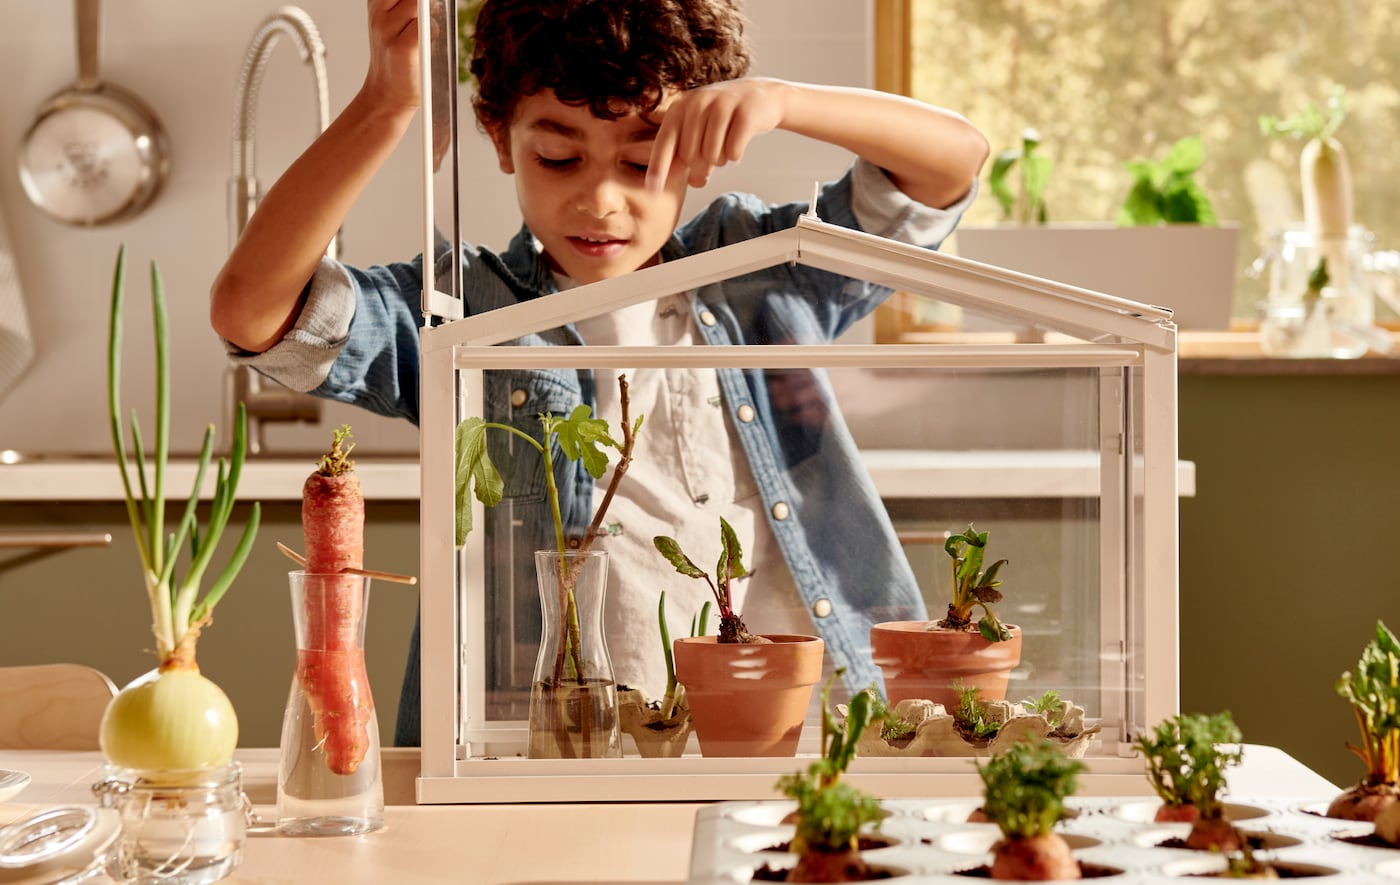 Boy peering down on young plants in a SOCKER greenhouse. Various vegetables set in water or soil next to it on the table.